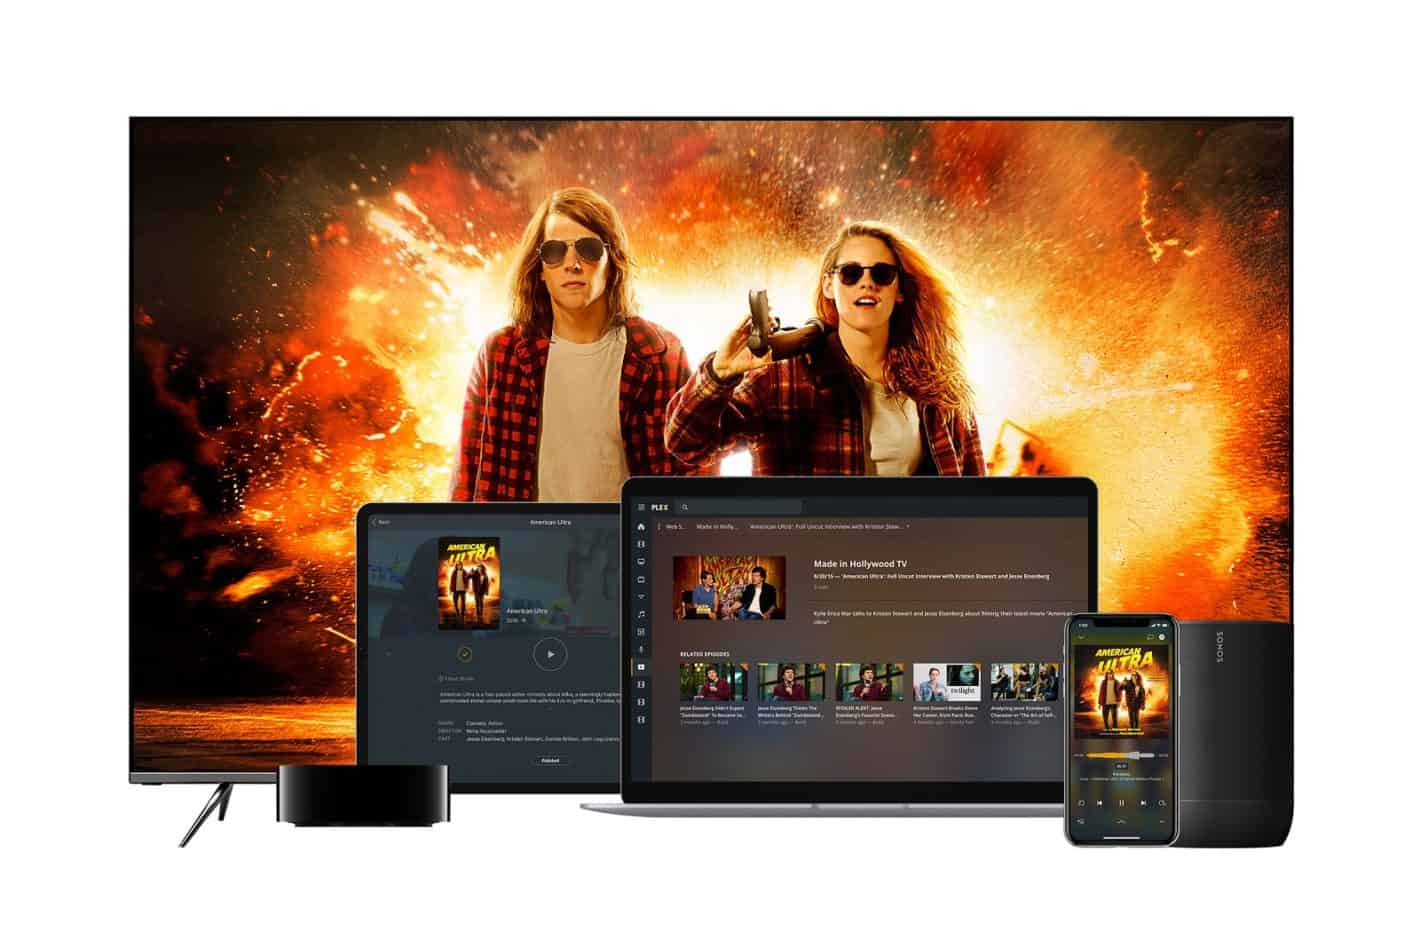 You Can Watch Crackle Movies & TV Shows On Plex